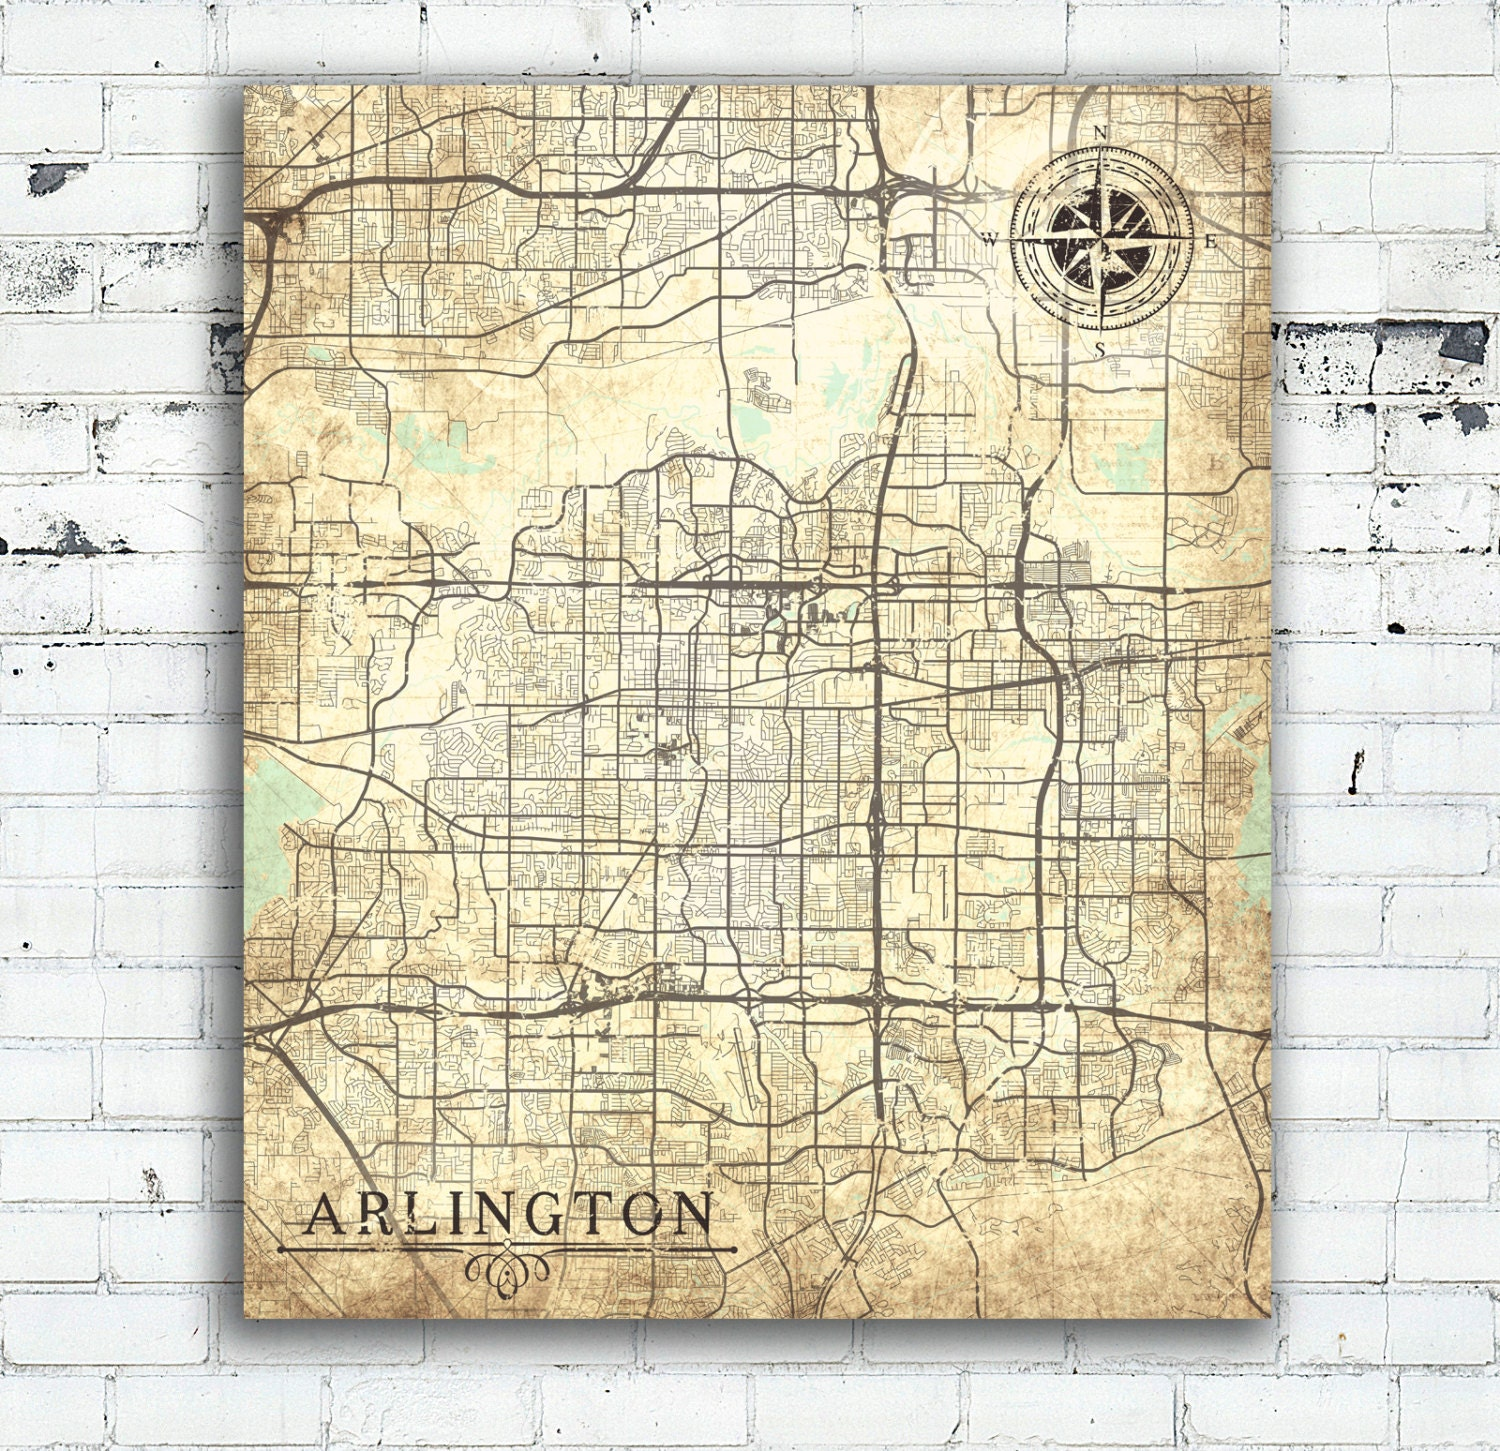 Map Of Arlington Texas.Arlington Tx Canvas Print Texas Tx Vintage Map Arlington Tx City